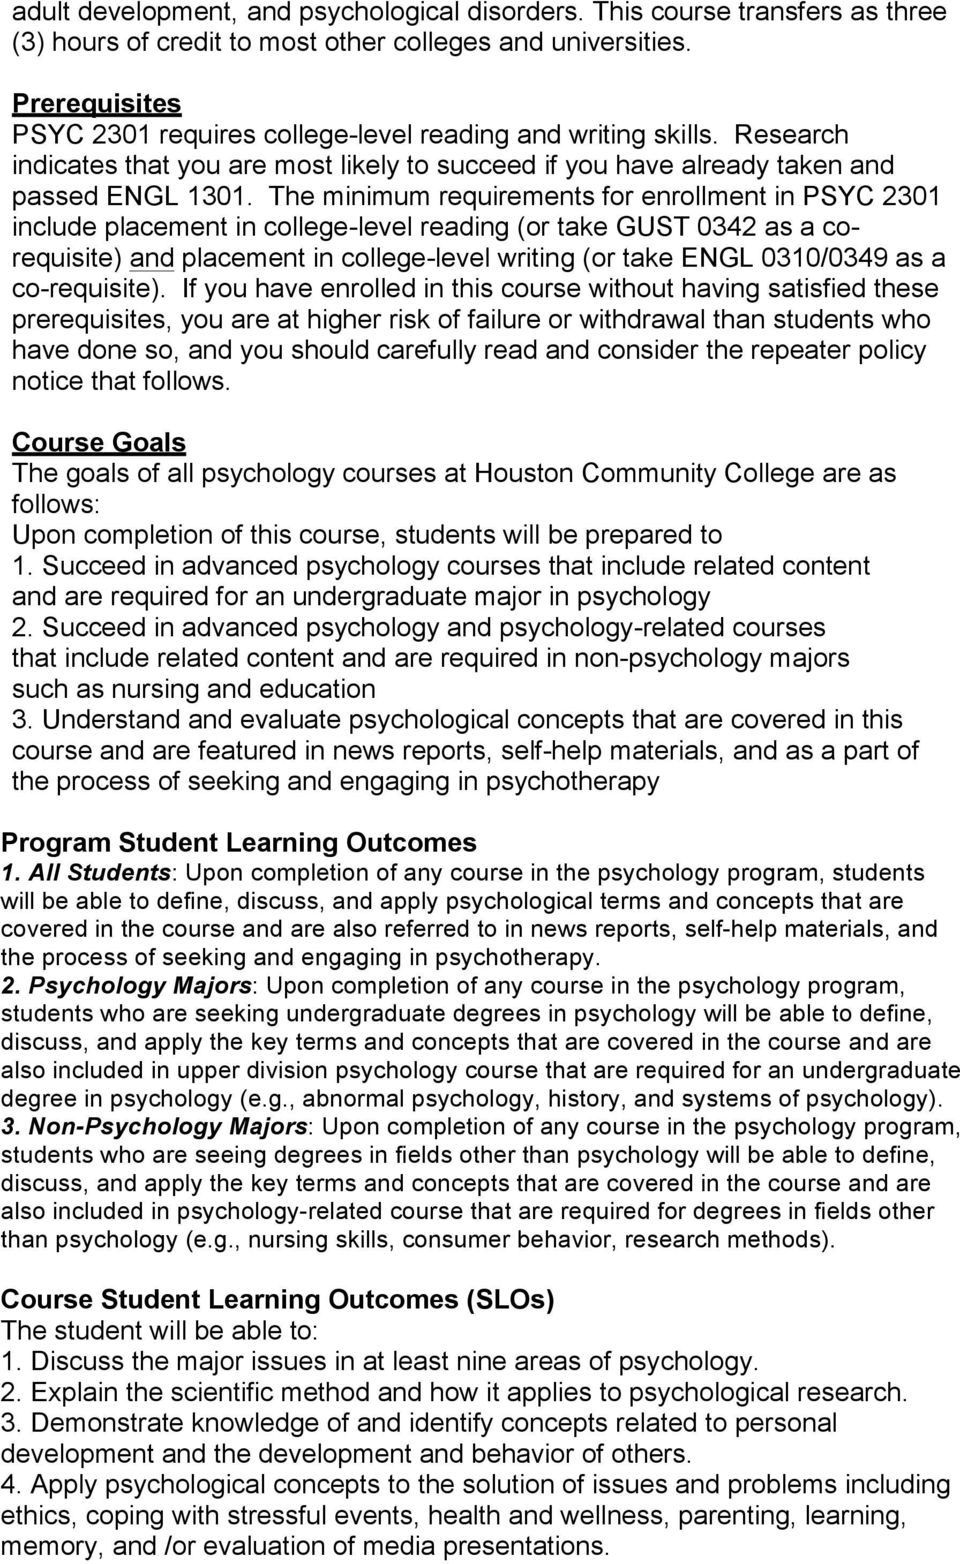 The minimum requirements for enrollment in PSYC 2301 include placement in college-level reading (or take GUST 0342 as a corequisite) and placement in college-level writing (or take ENGL 0310/0349 as